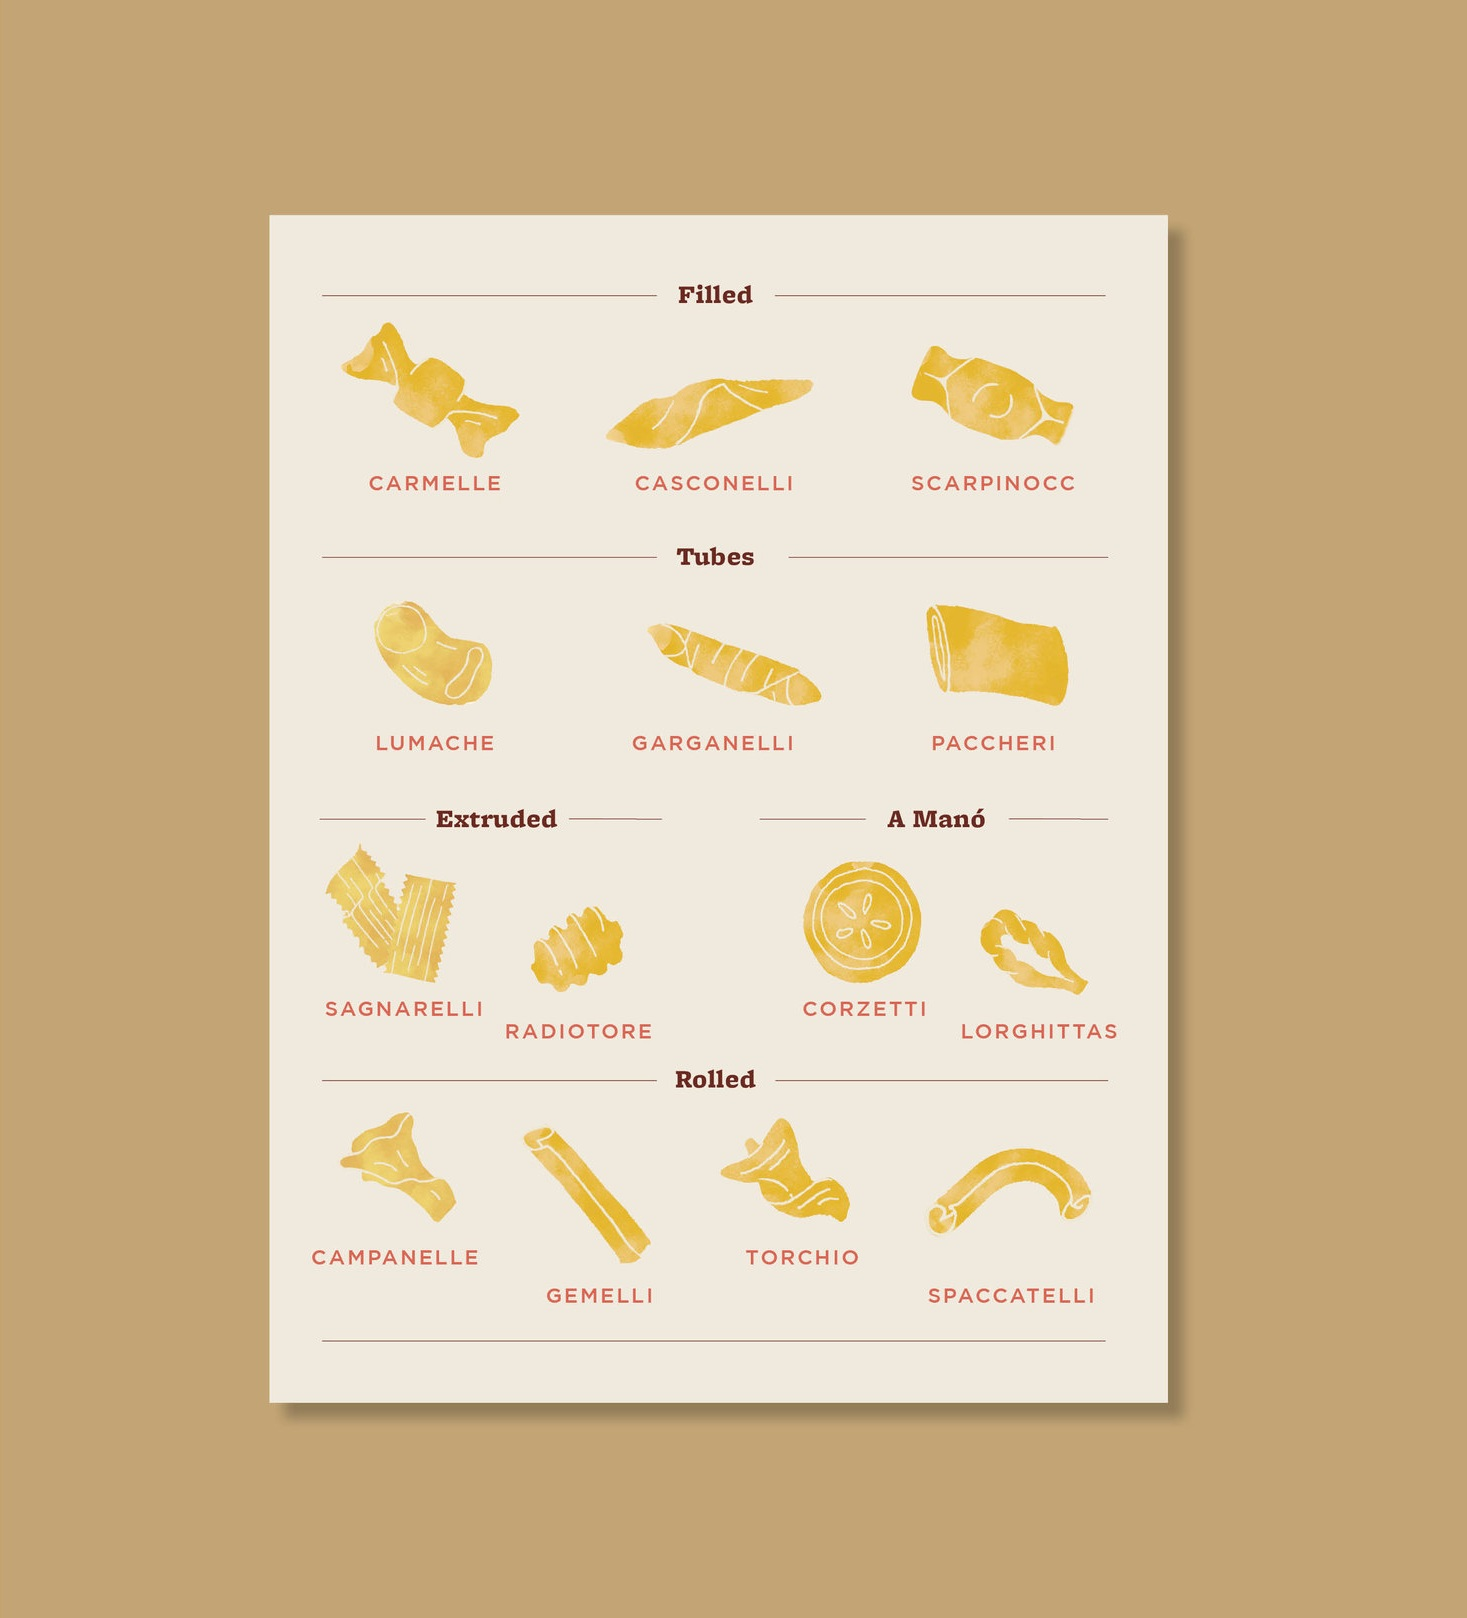 A series of pasta illustrations created for Farina Restaurant in the Crossroads, created to help customers understand the more obscure pasta options.